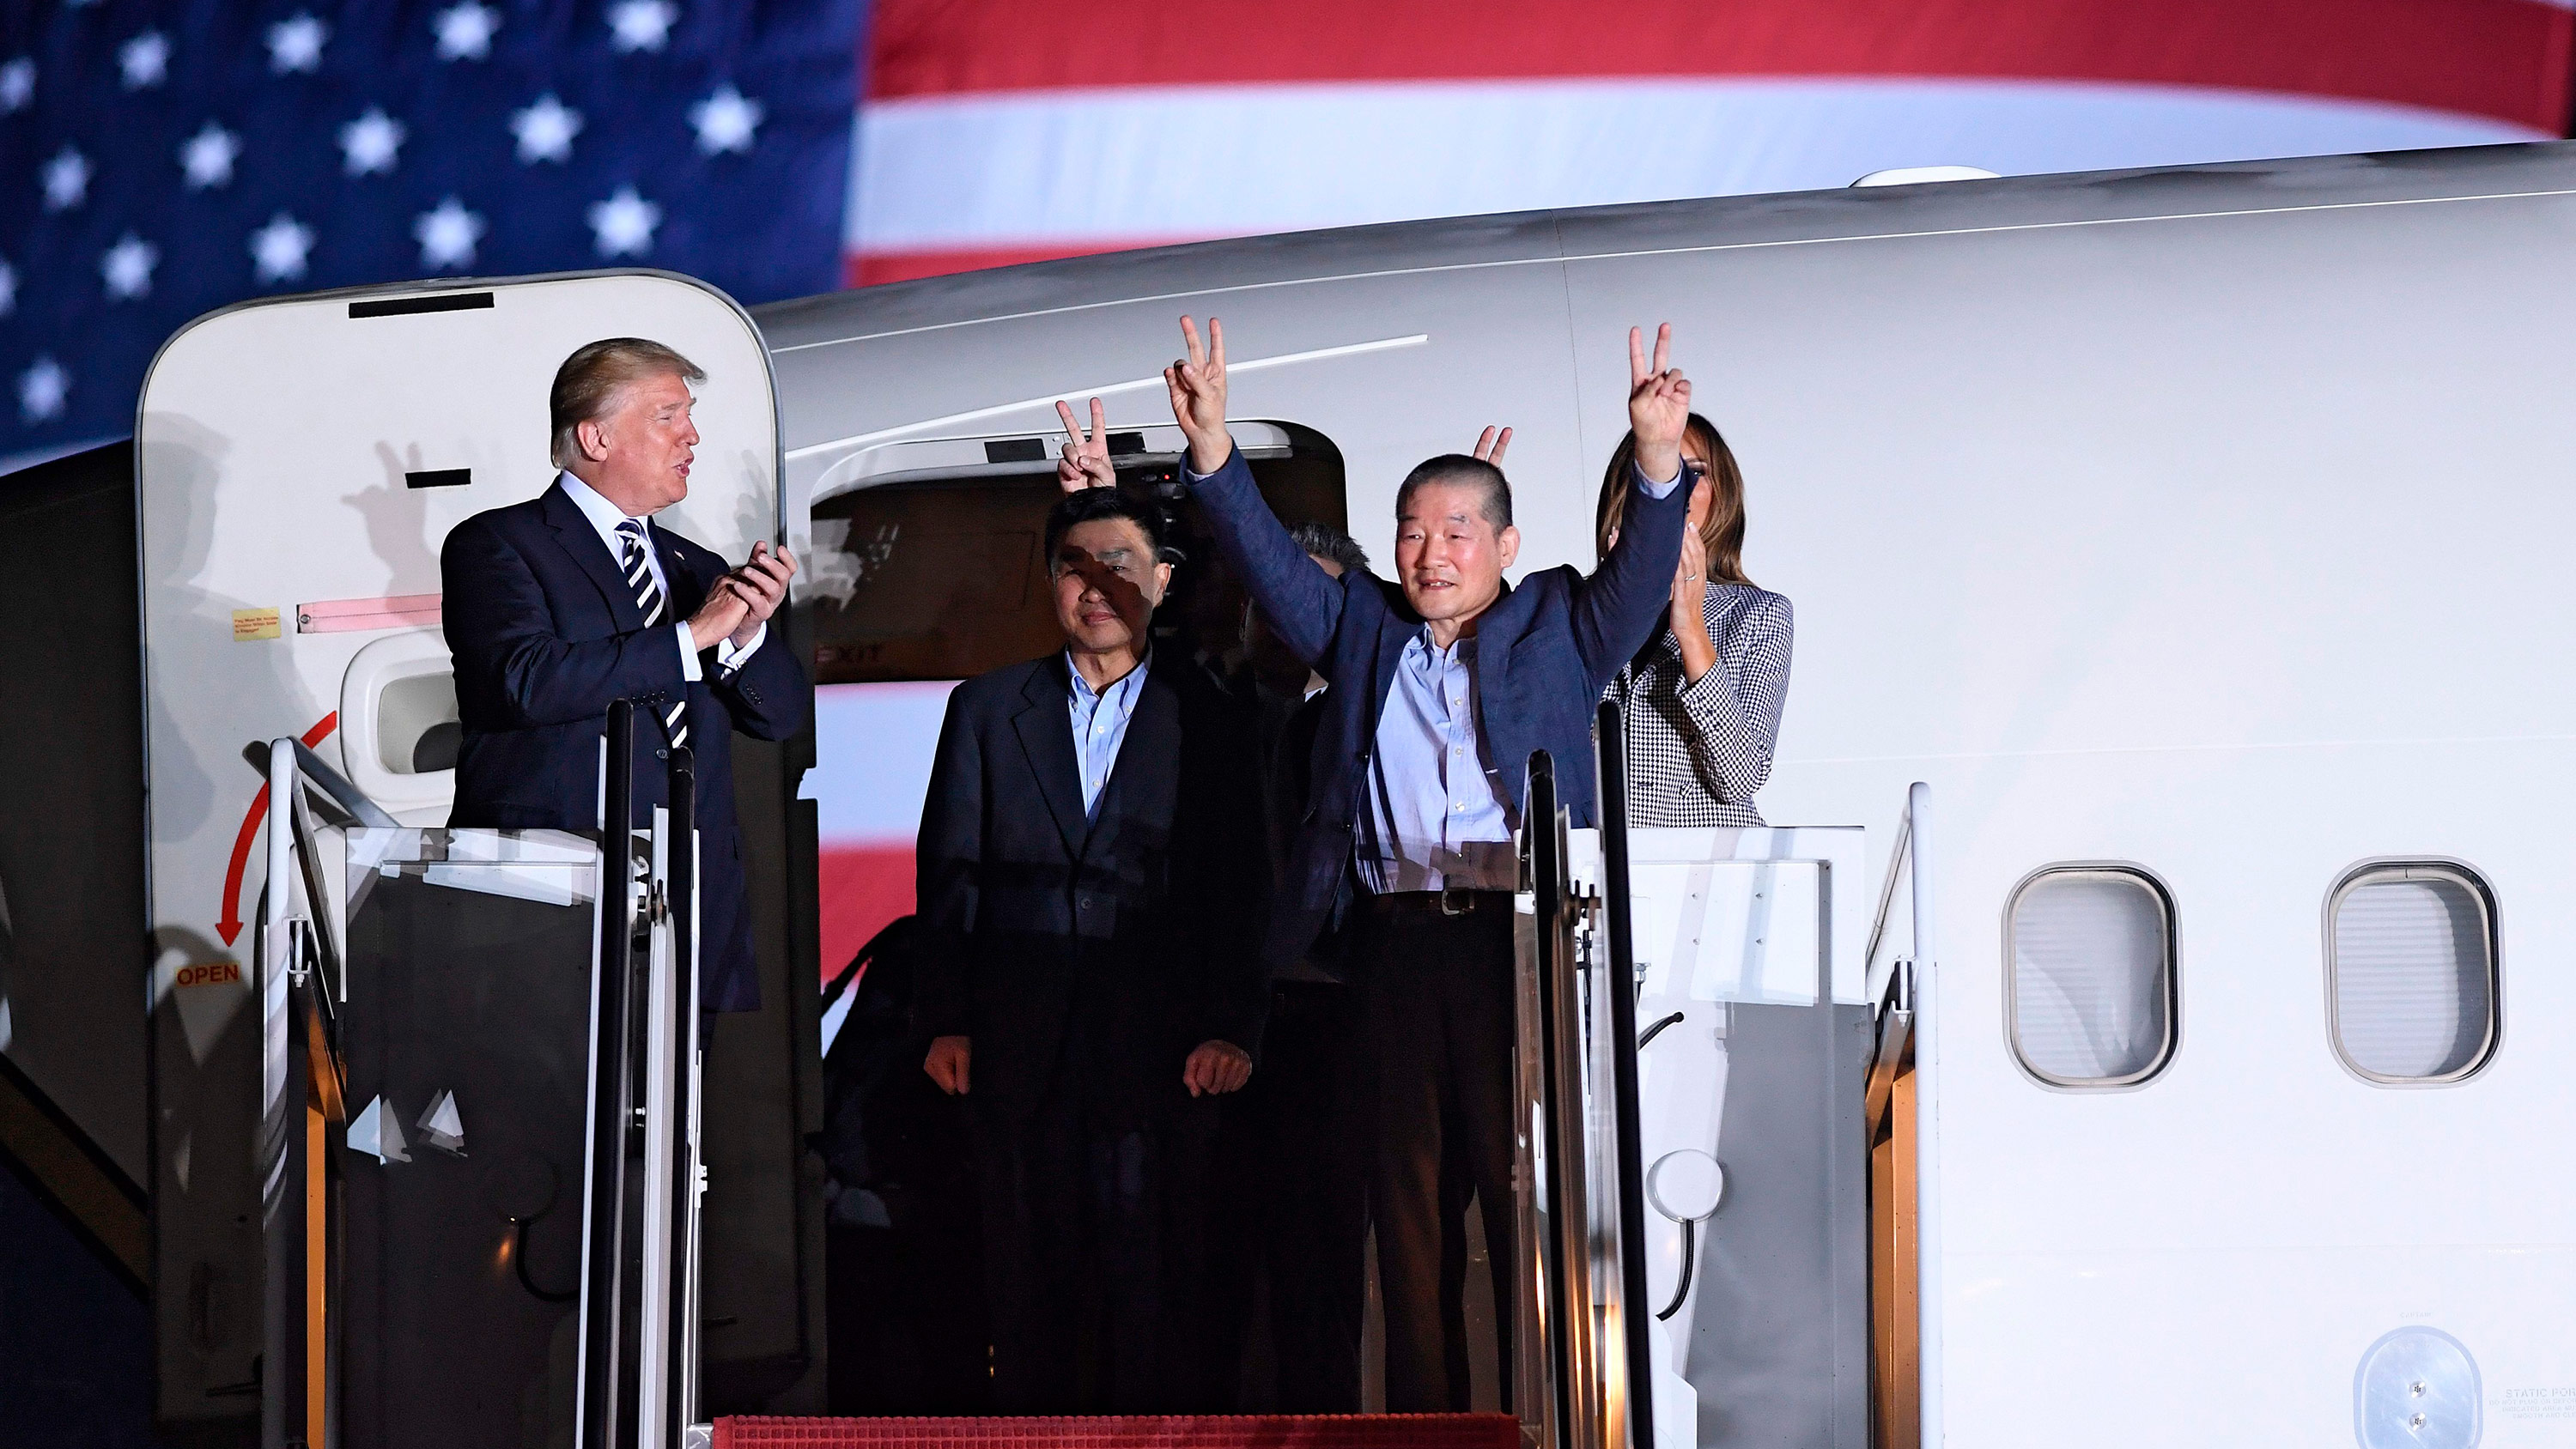 US President Donald Trump (left) applauds as Kim Dong Chul (second right) gestures upon his return with Kim Hak-song (center) and Tony Kim (behind).